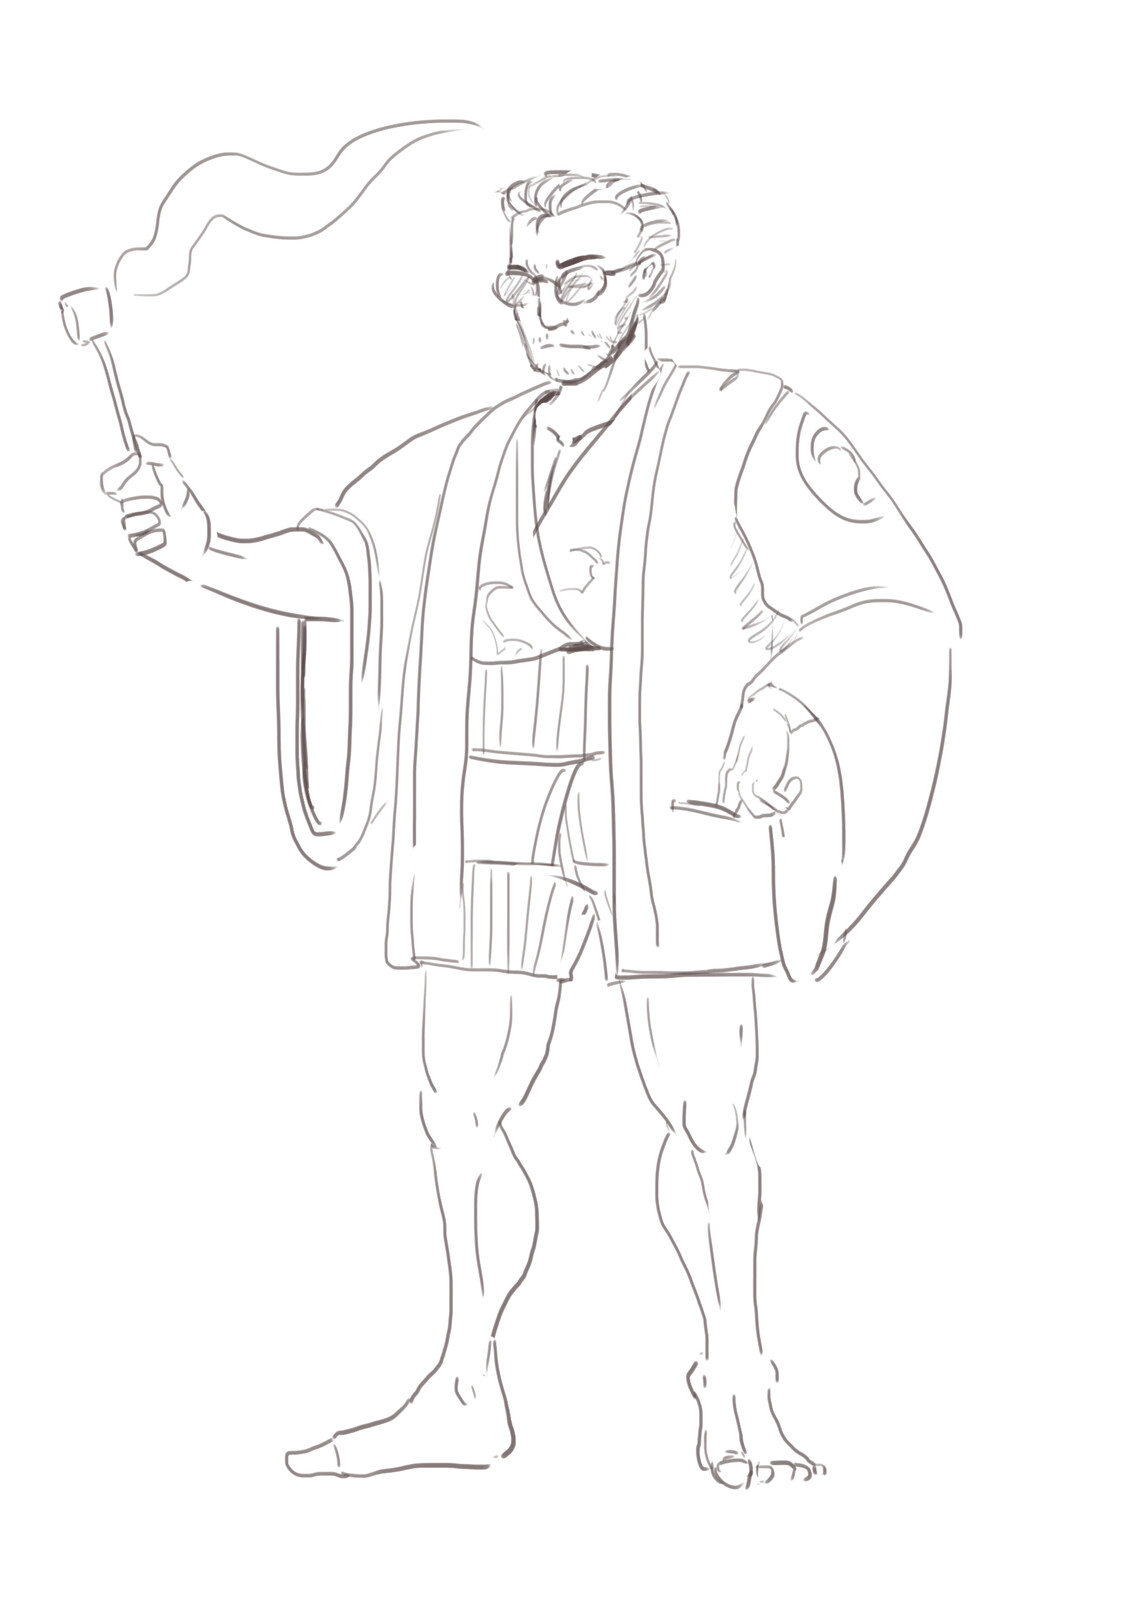 Beach dad character study.